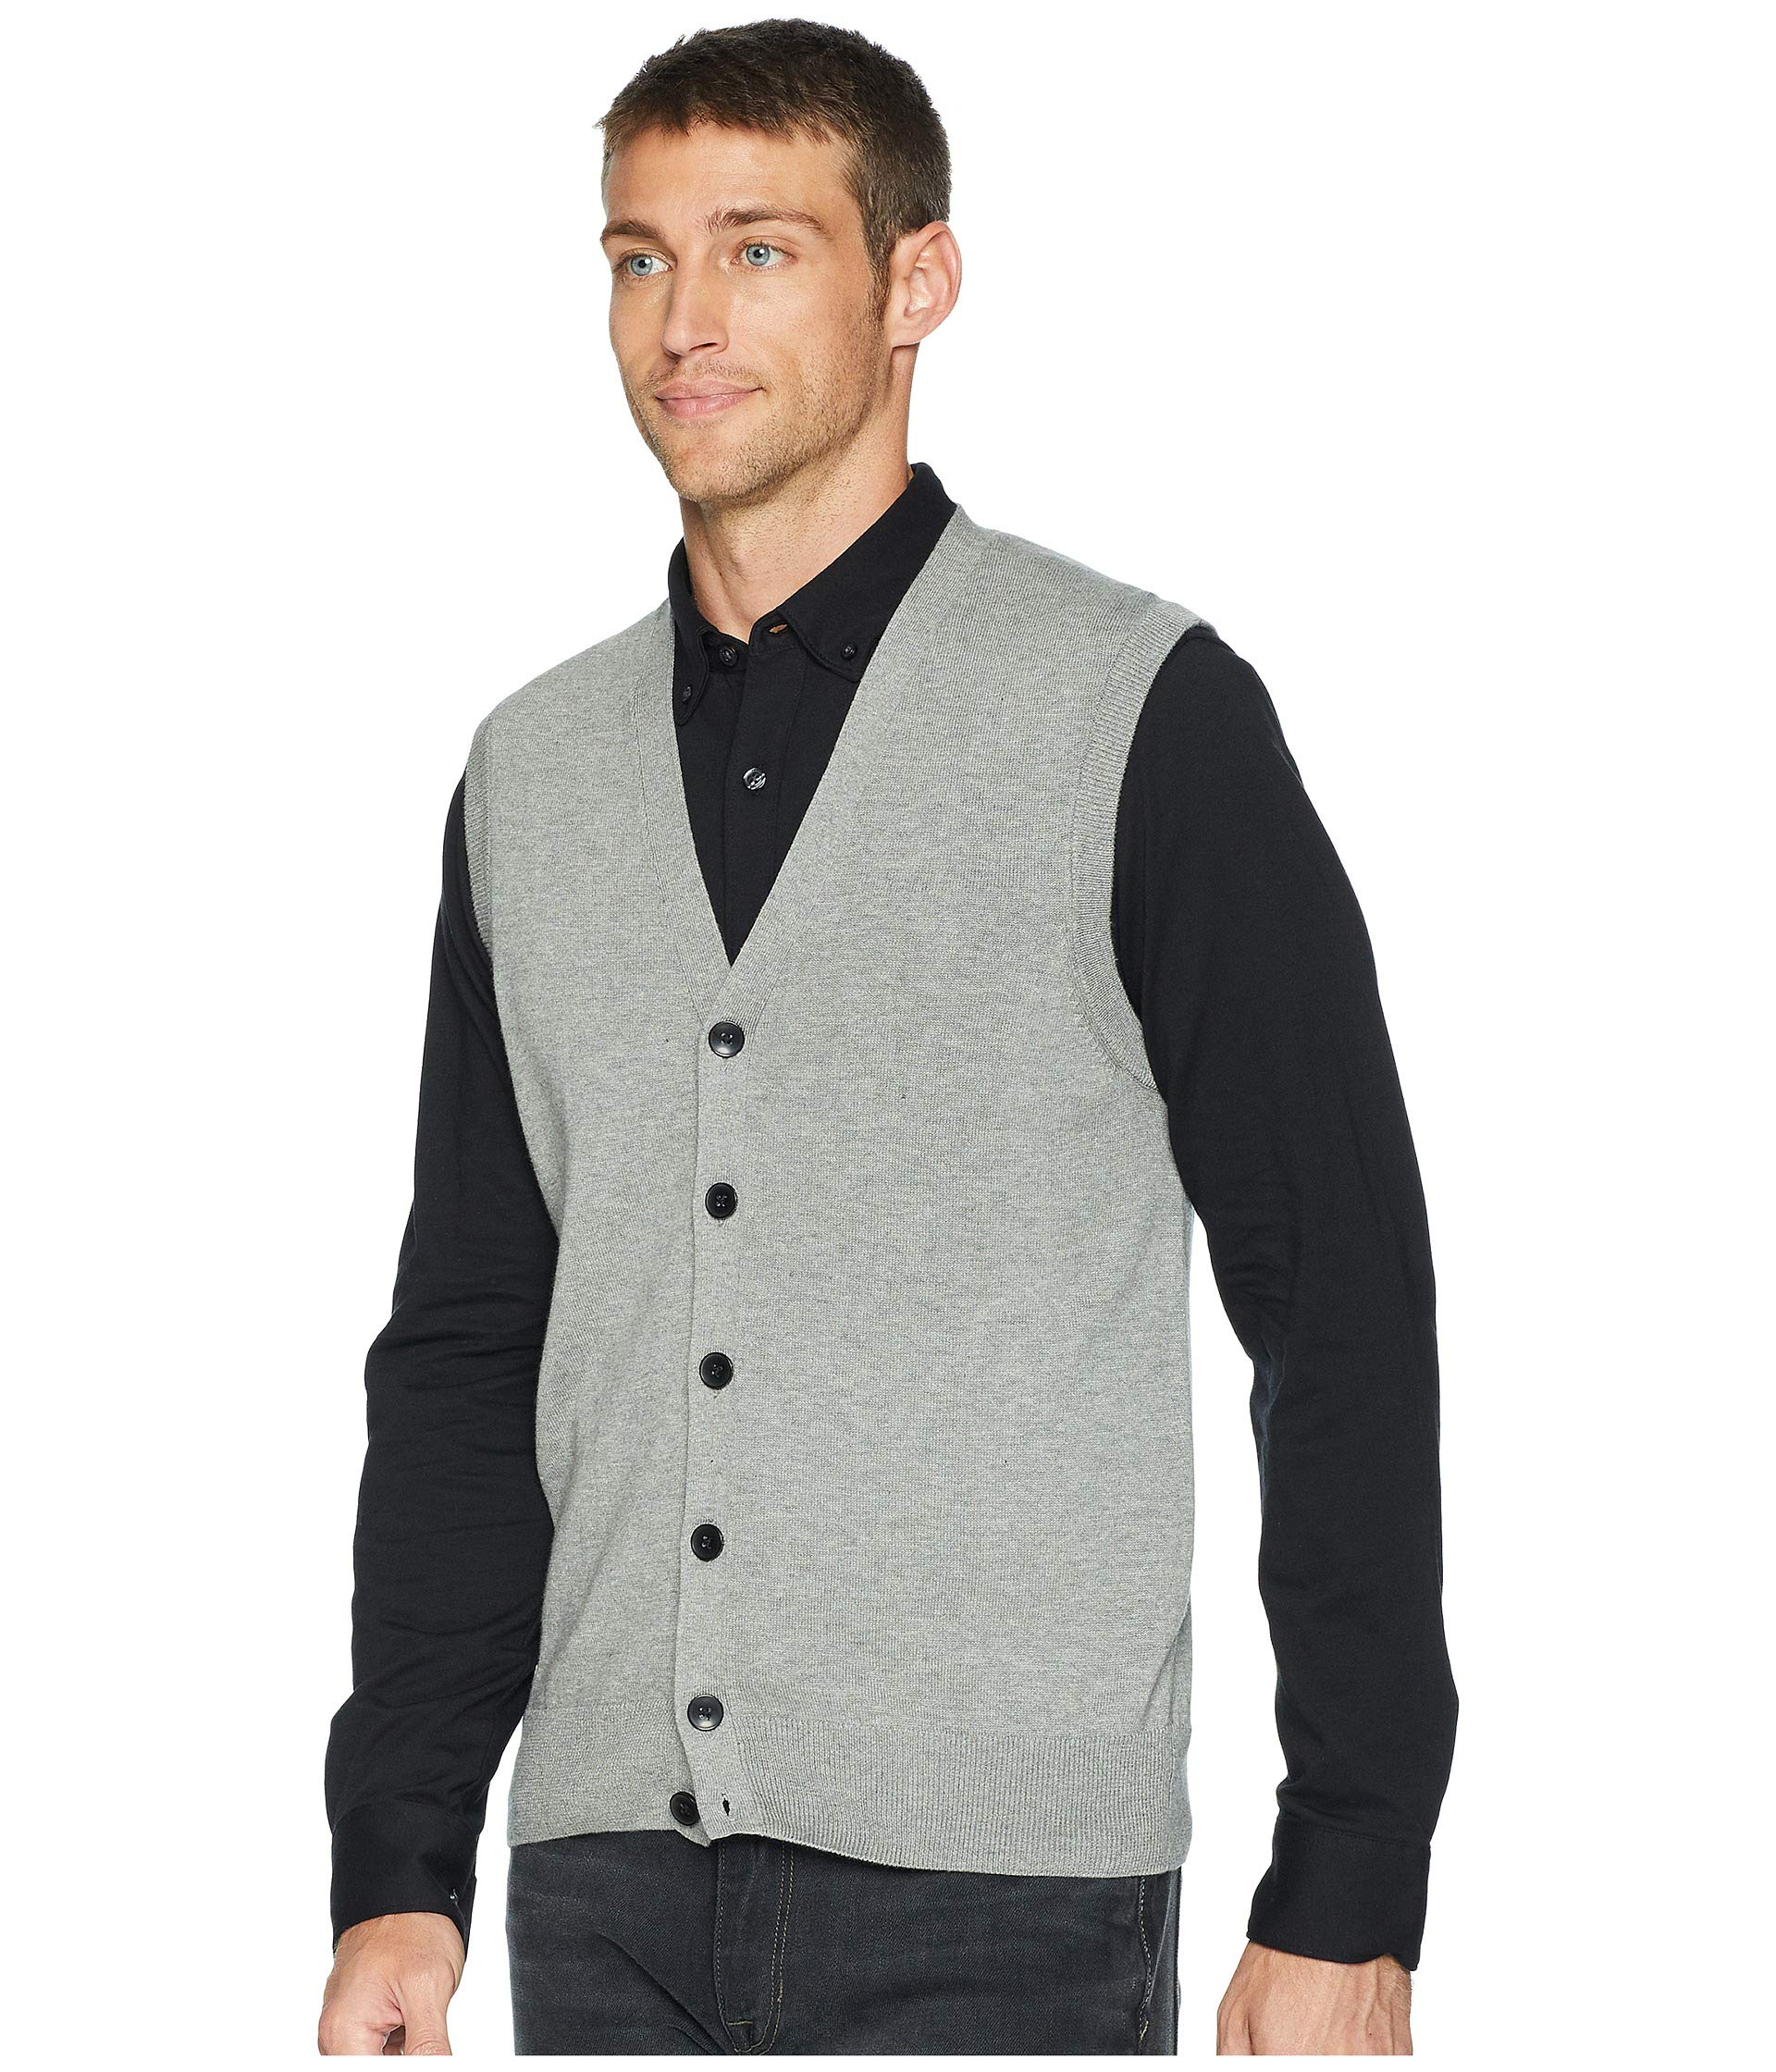 Smoke Ellis Modal Vest Sweater Perry Cotton Heather Knit pUBq4YYZw